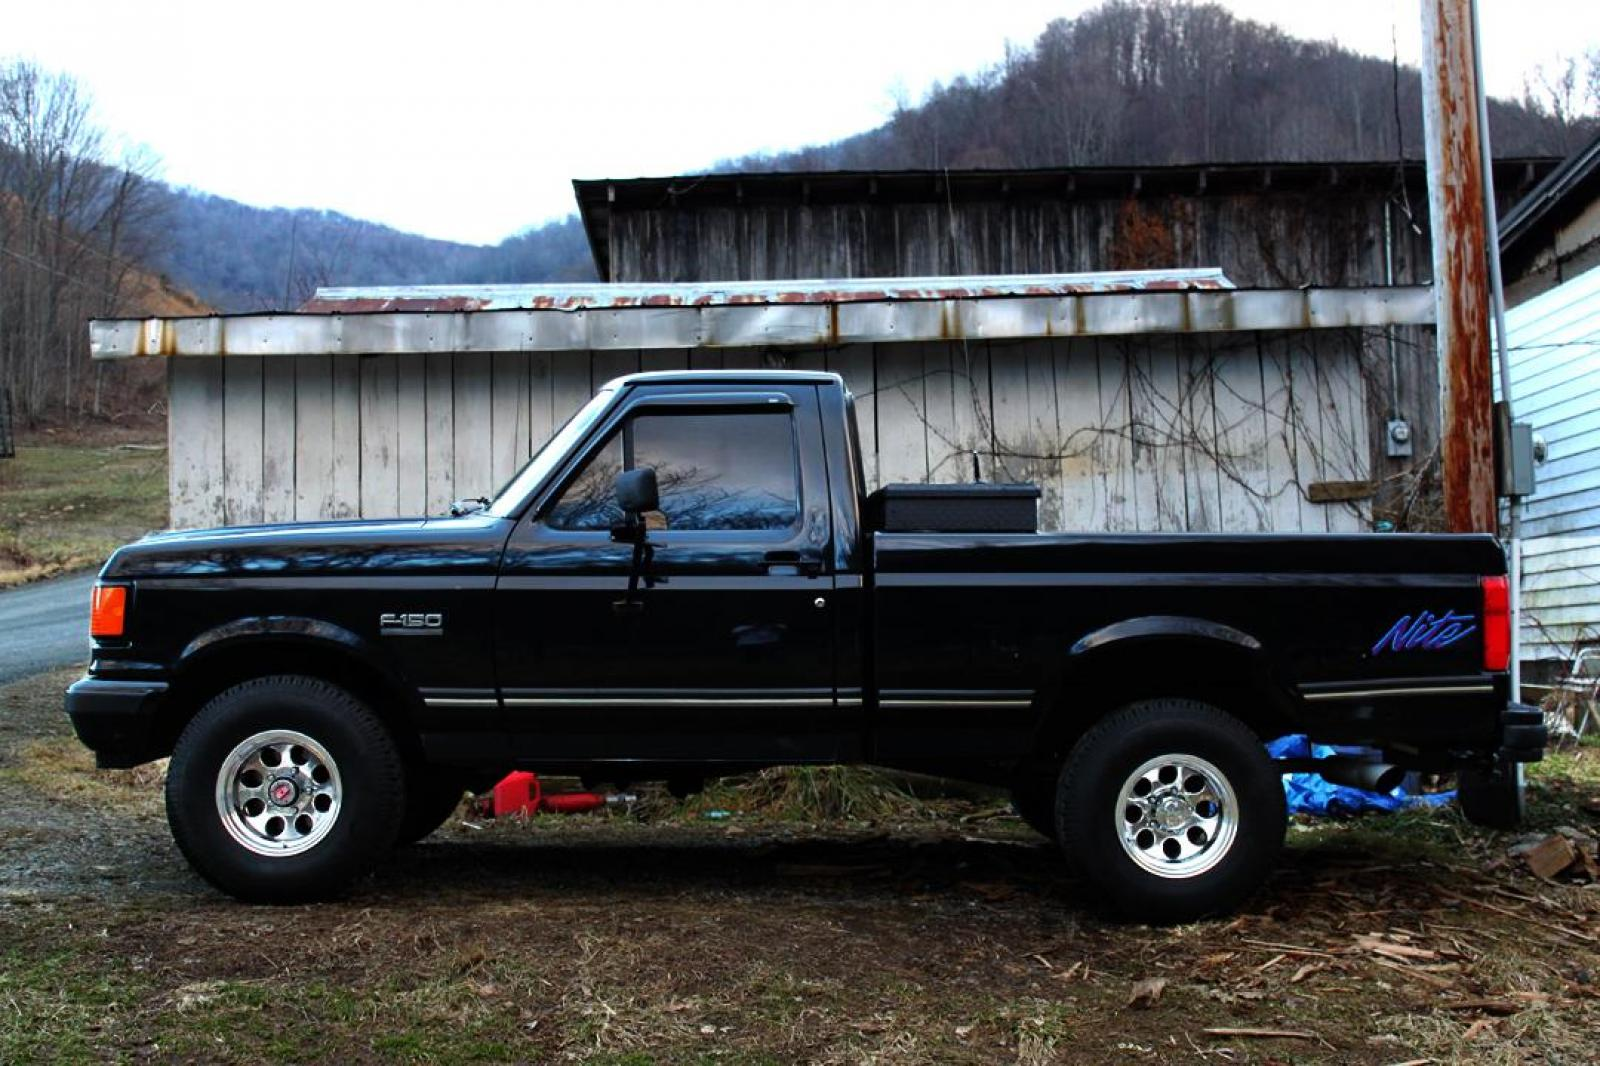 1991 Ford F 150 Information And Photos Zombiedrive Xlt Lariat 800 1024 1280 1600 Origin